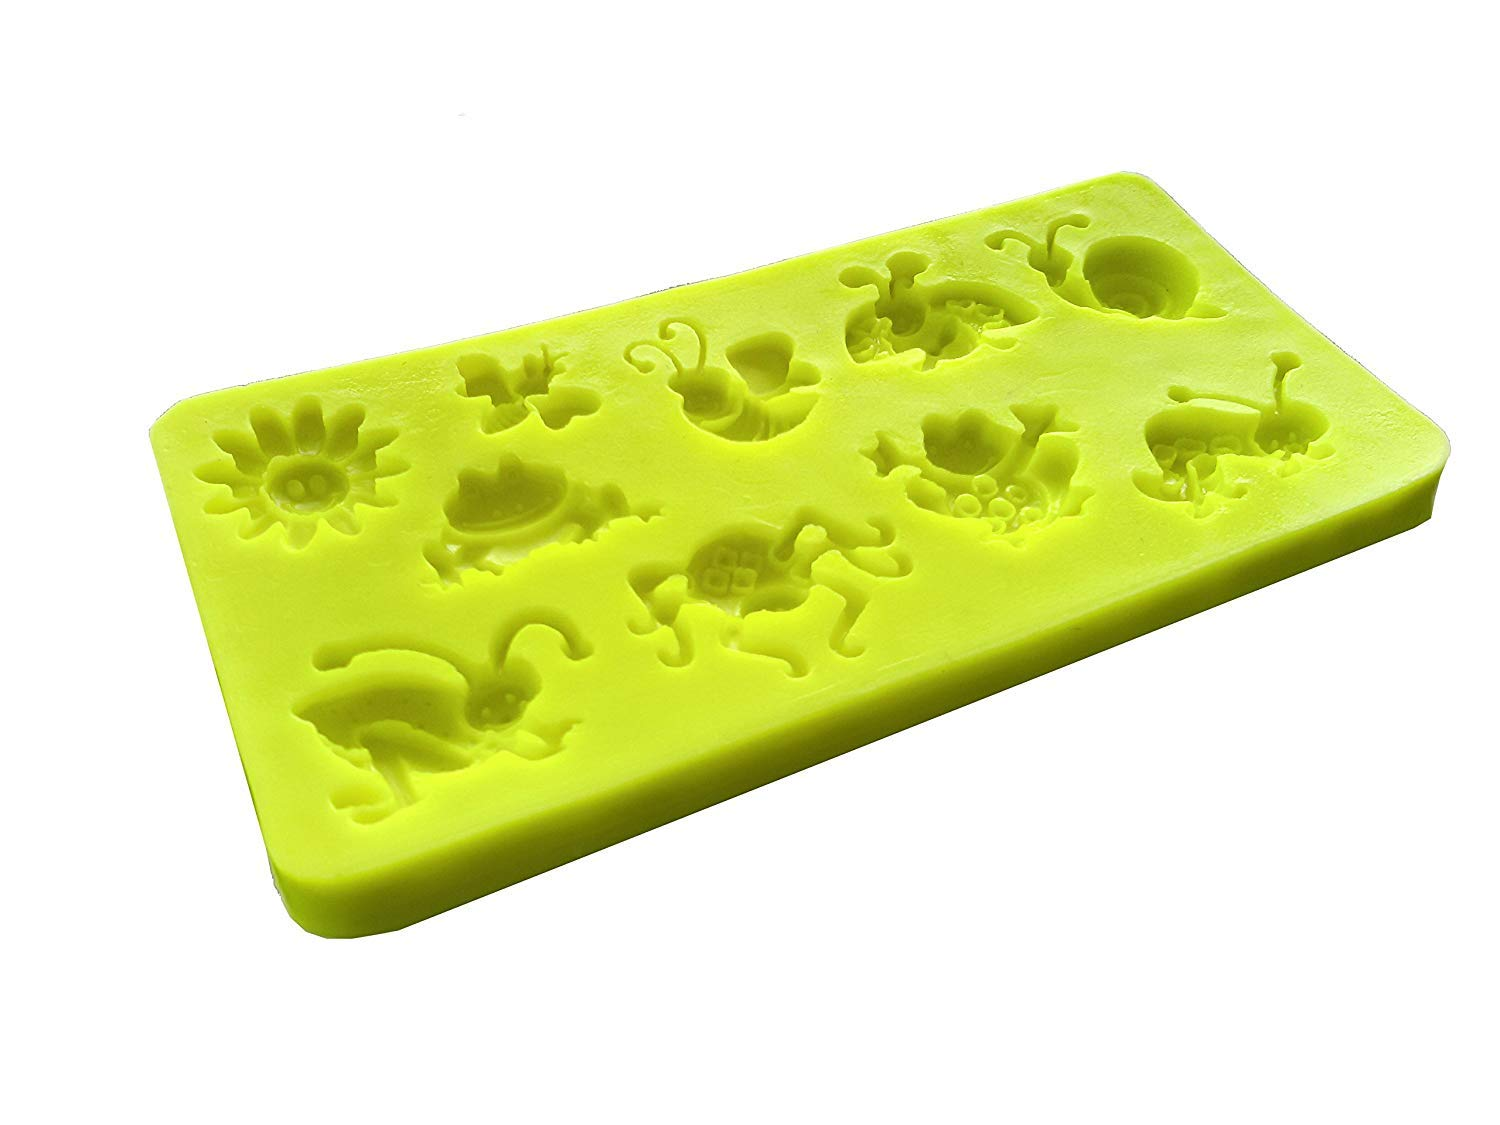 Inception Pro Infinite Silicone mold mould arts and crafts frog toad earthworm grillo snail spider bee ladybird powdered smile